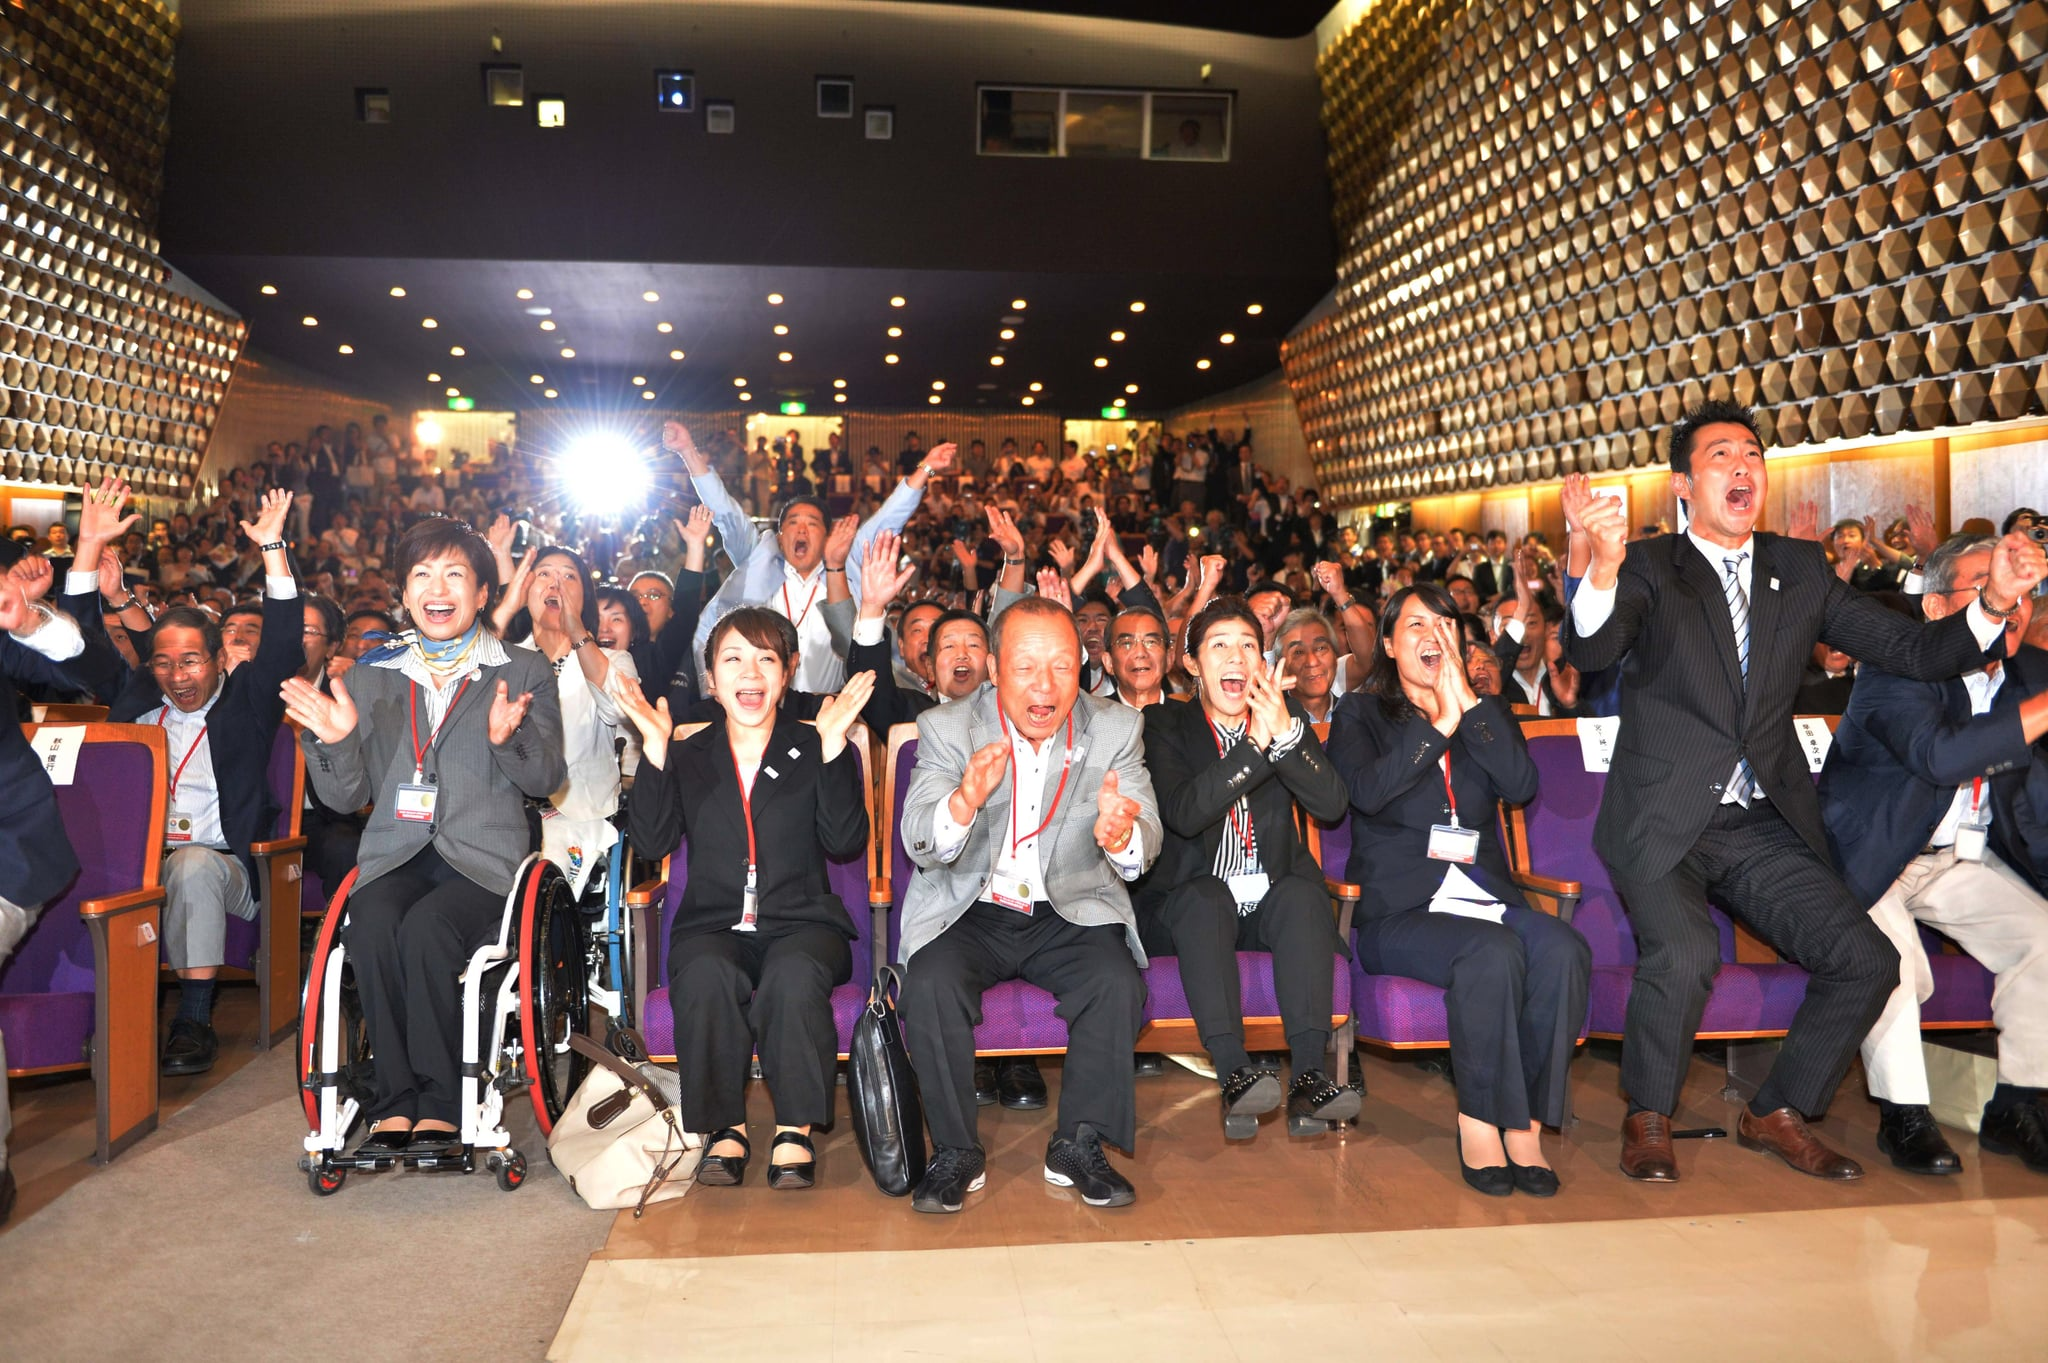 . . . And at a viewing of the announcement at Tosho Hall, past and present athletes jumped from their seats!